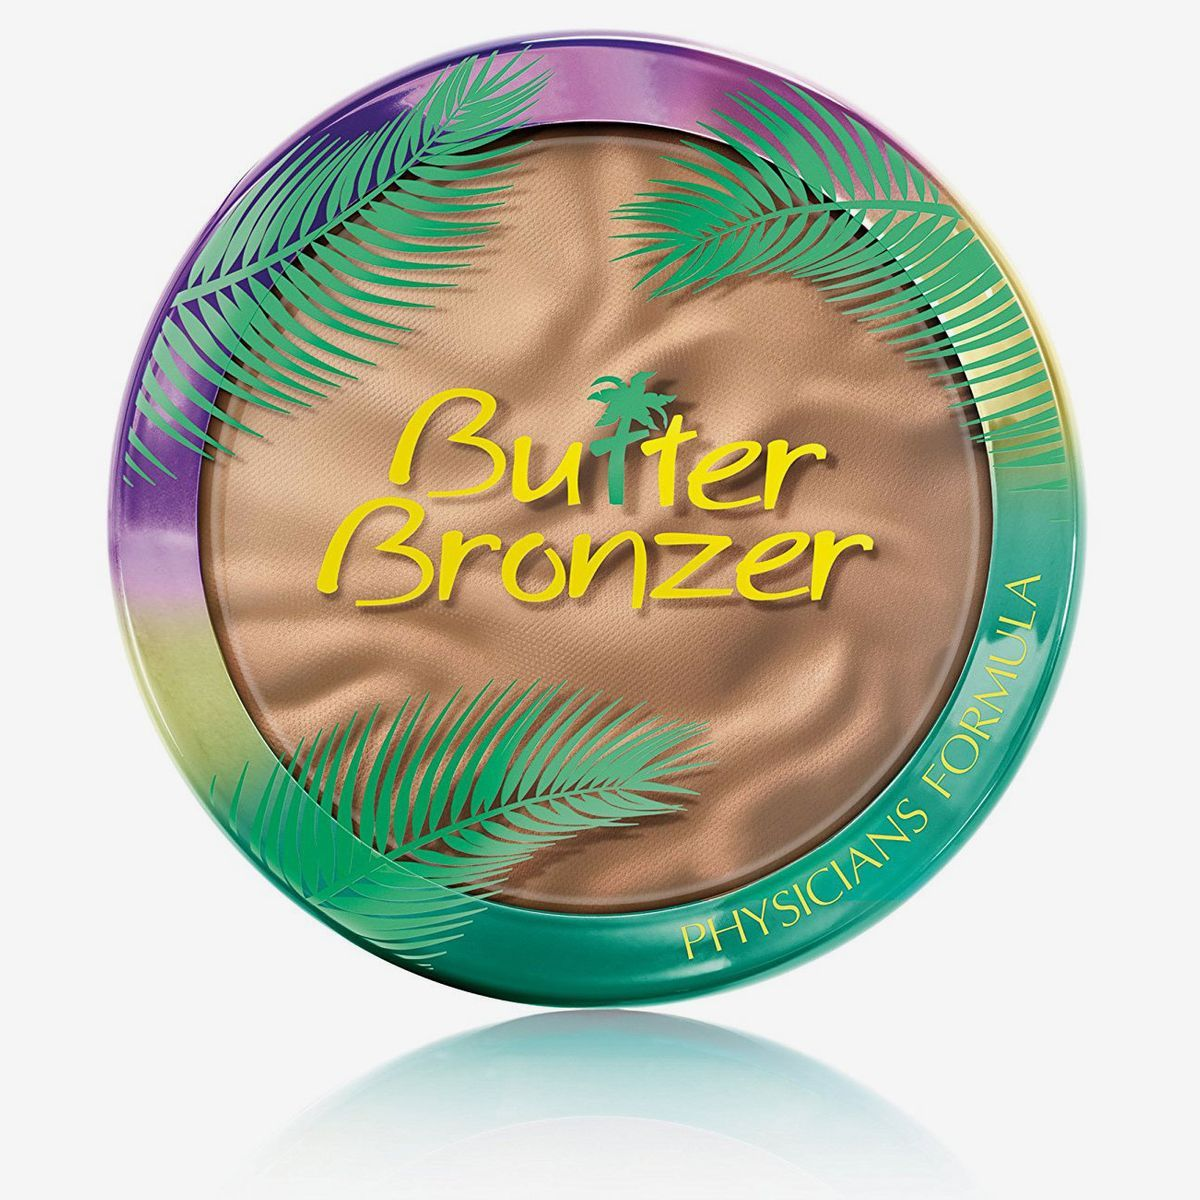 17 Tiktok Famous Beauty Products That Are Worth Buying According To Tiktokers Physicians Formula Butter Bronzer Butter Bronzer Best Bronzer